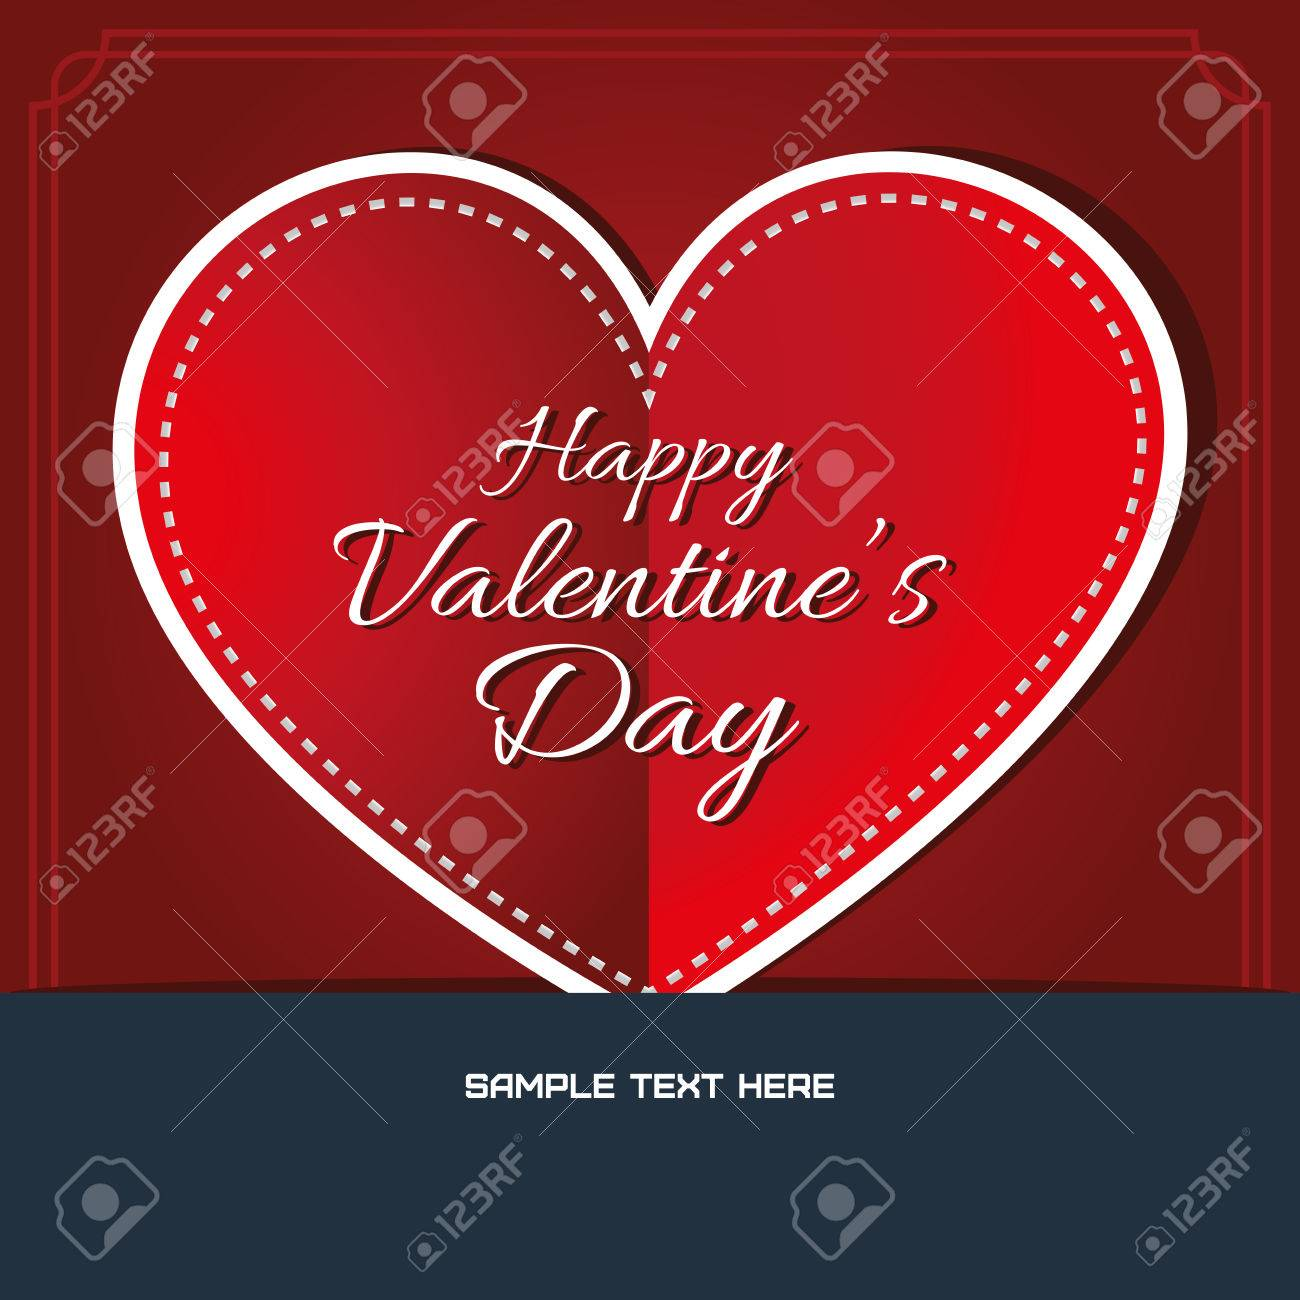 Happy valentines day greeting card stitched heart with fancy happy valentines day greeting card stitched heart with fancy greeting text digital background vector m4hsunfo Gallery